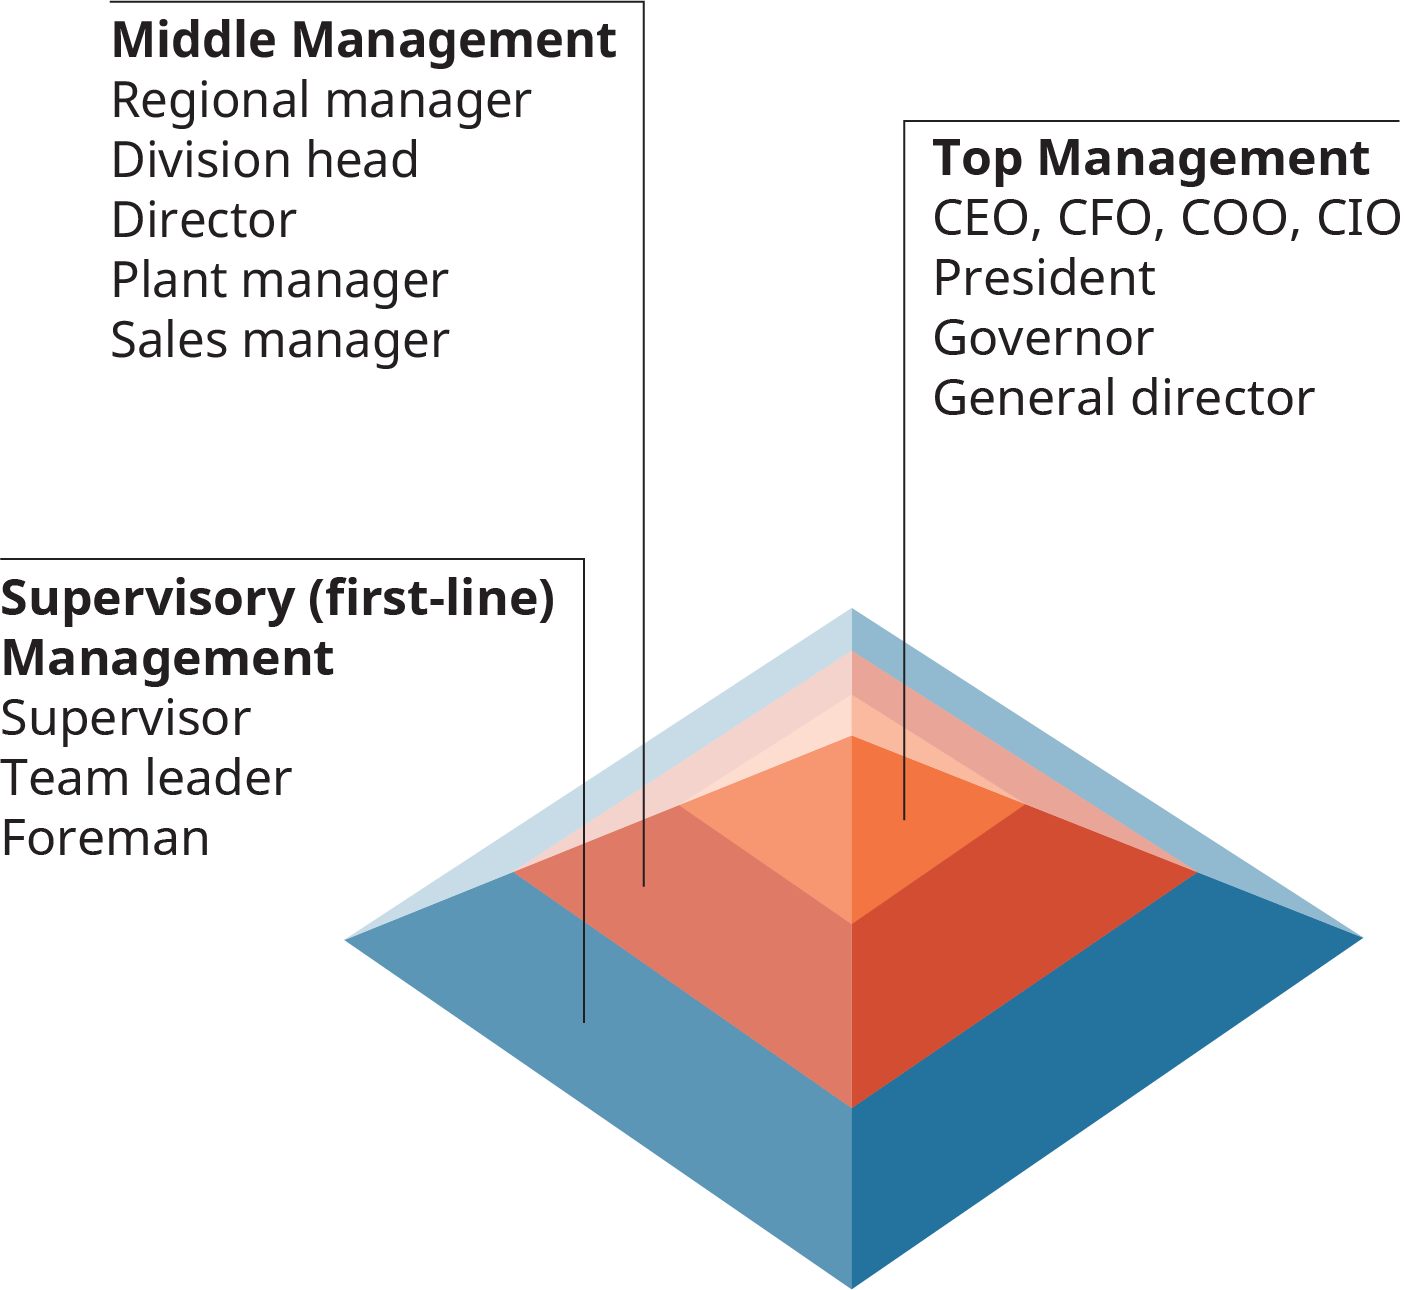 The bottom level is labeled as supervisory, or first line, management. This layer includes the supervisor, team leader, and foreman. The next level up is labeled middle management, and includes the regional manager, division manager, director, plant manager, and sales manager. The highest level, or peak of the pyramid, is labeled top management. Top management includes the C E O; C F O; C O O; C I O; the president, governor, and general director.